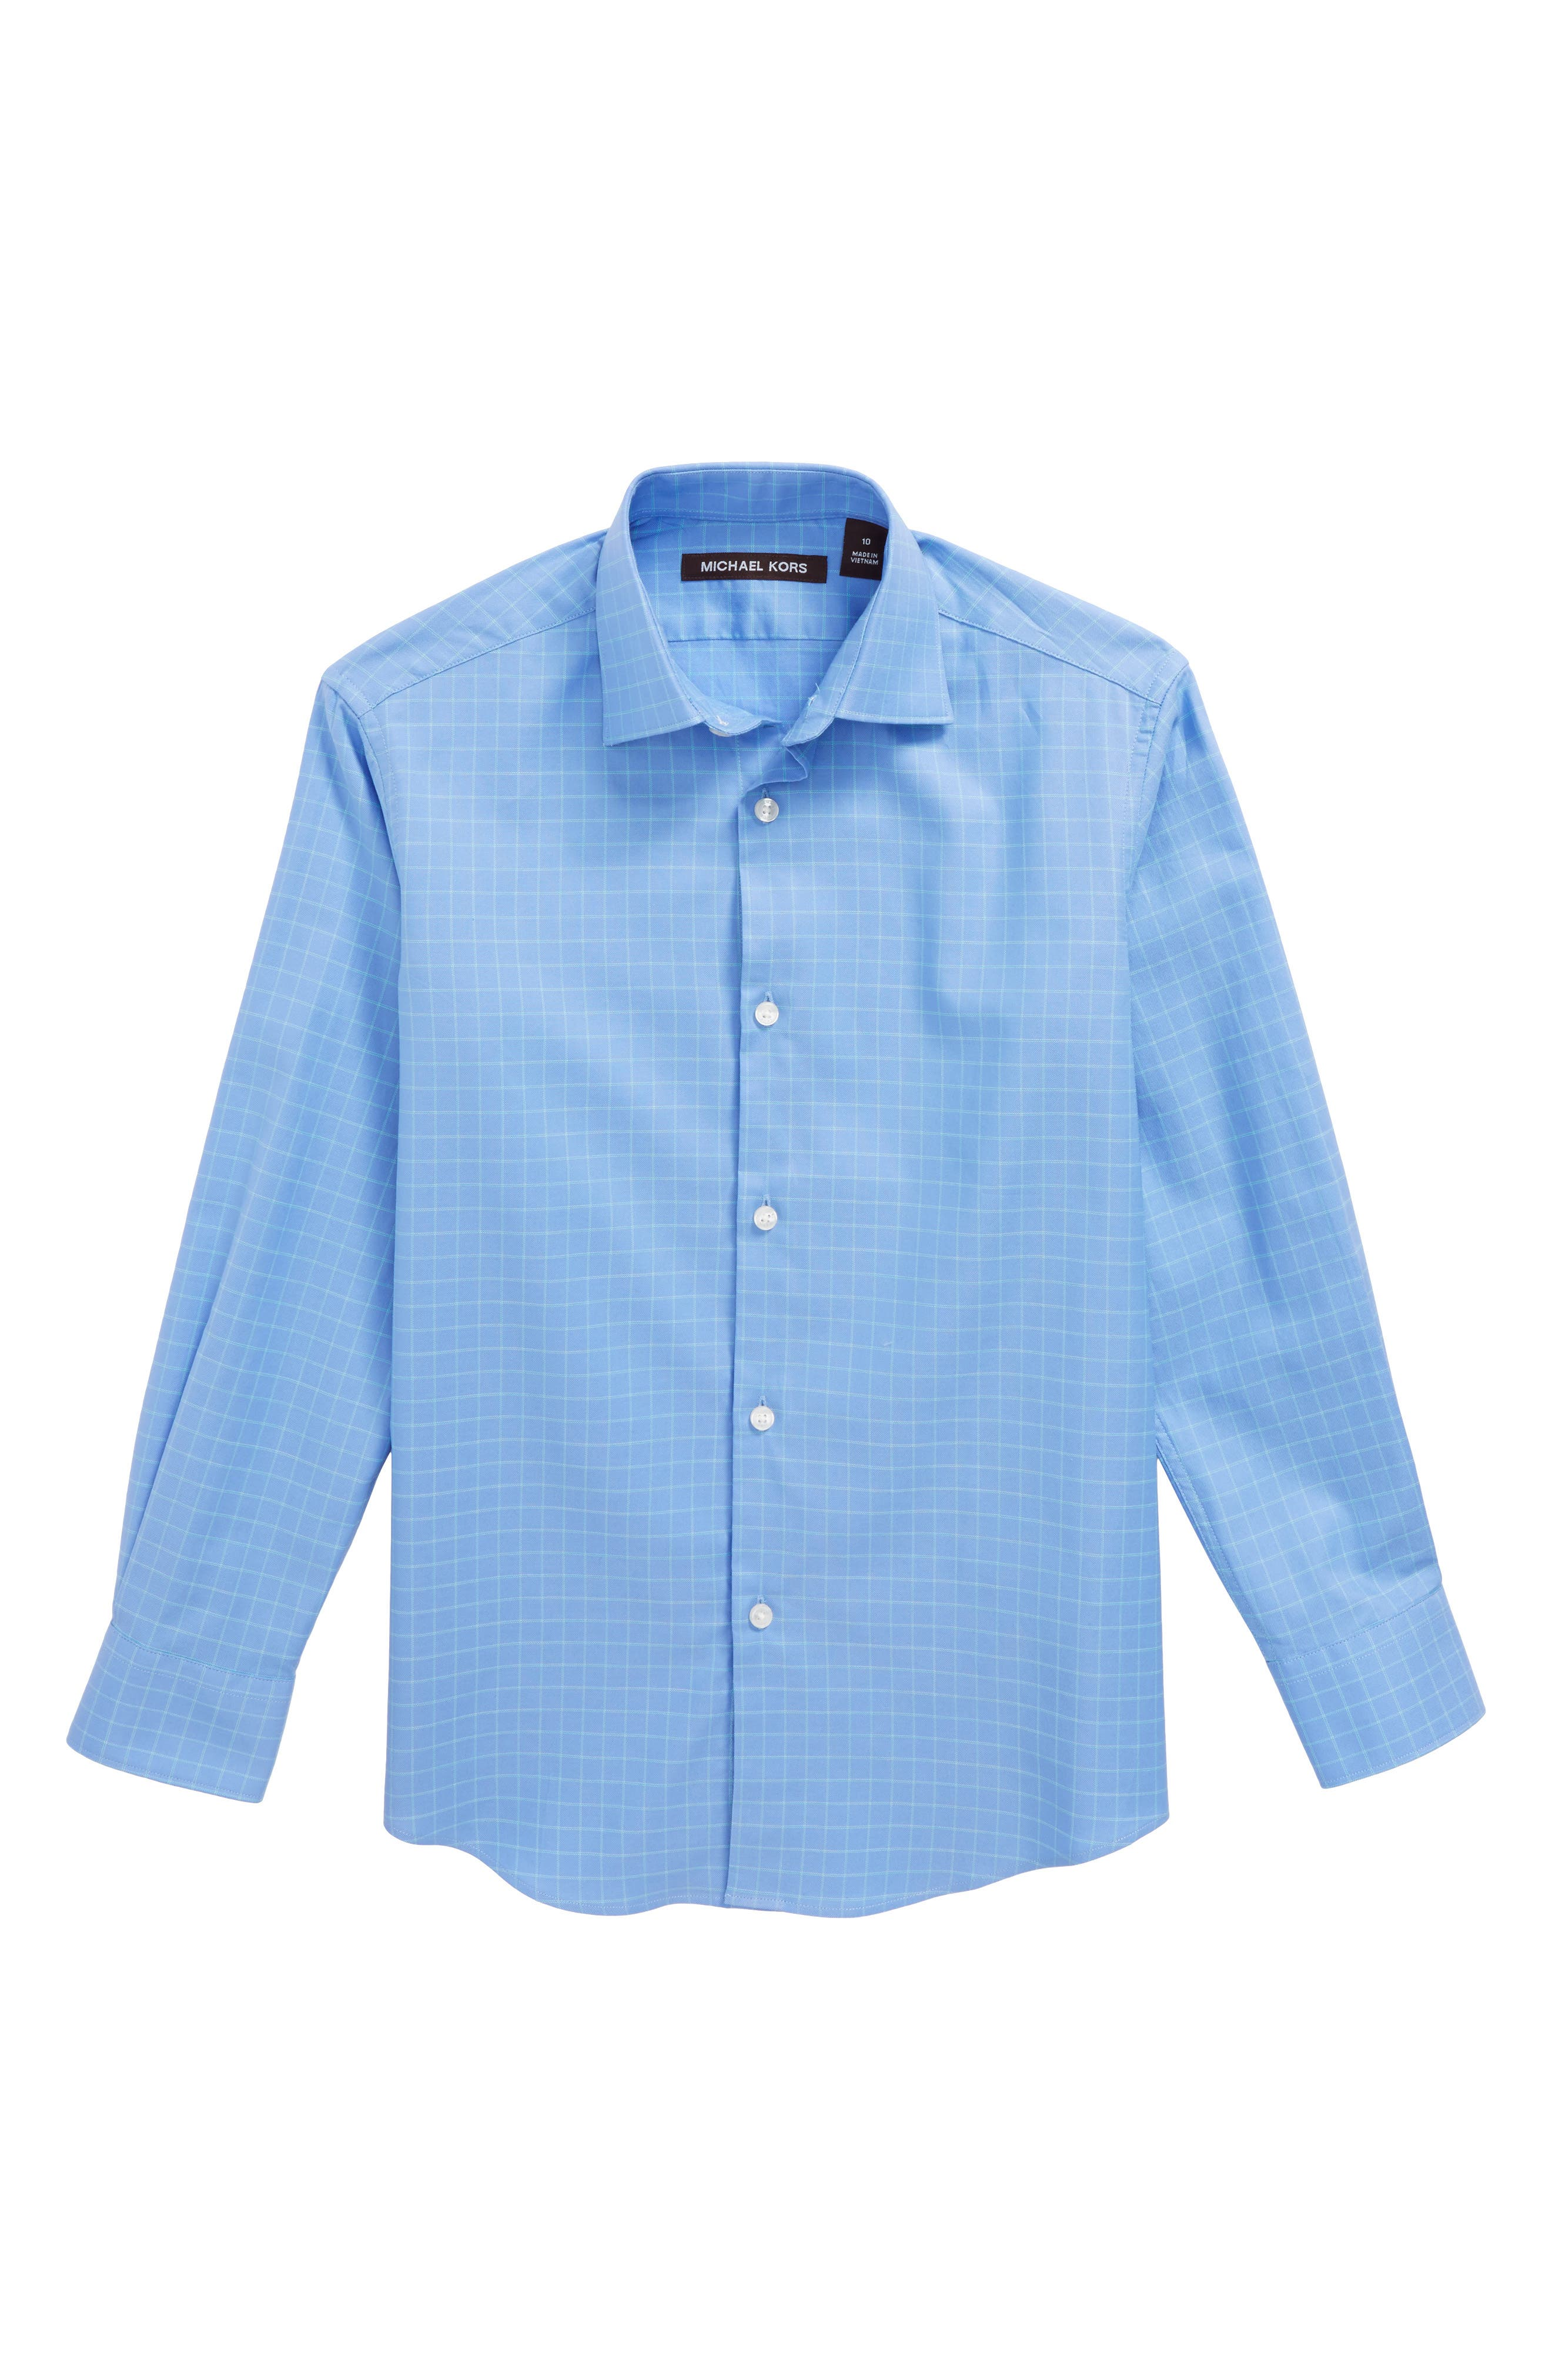 Collection Check Dress Shirt,                         Main,                         color, Blue/ Green